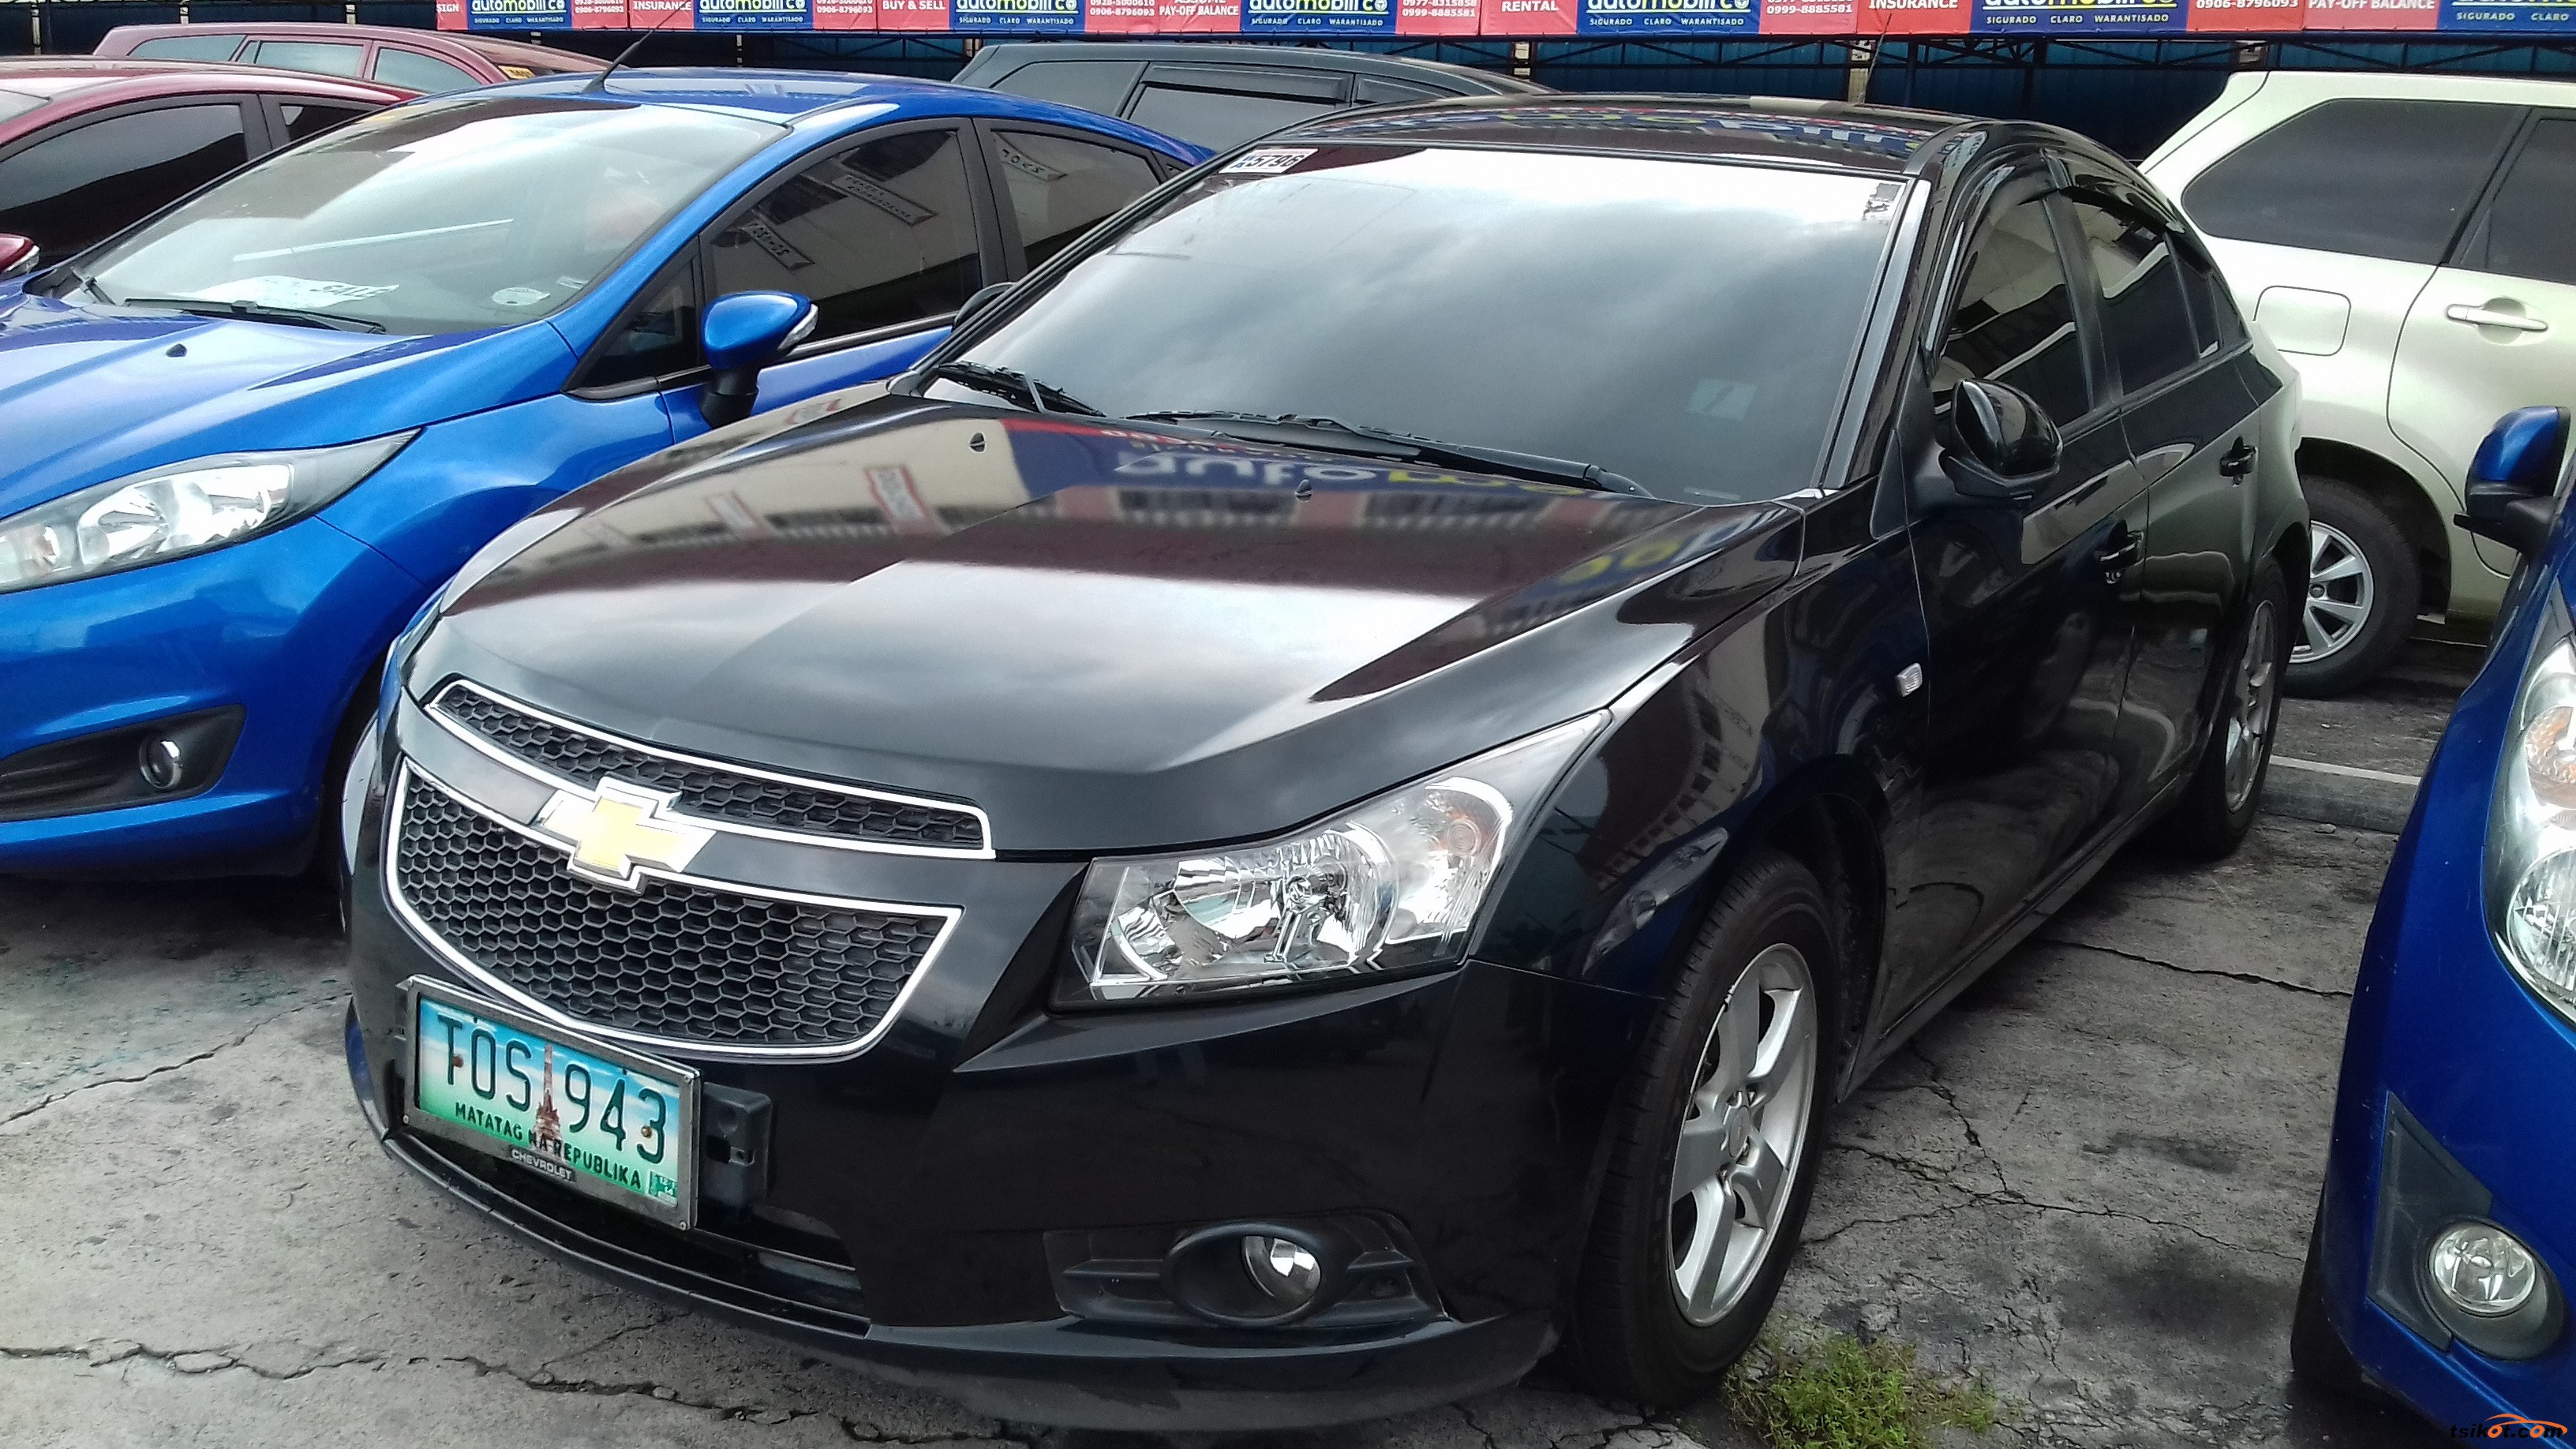 chevrolet cruze 2012 car for sale metro manila. Black Bedroom Furniture Sets. Home Design Ideas